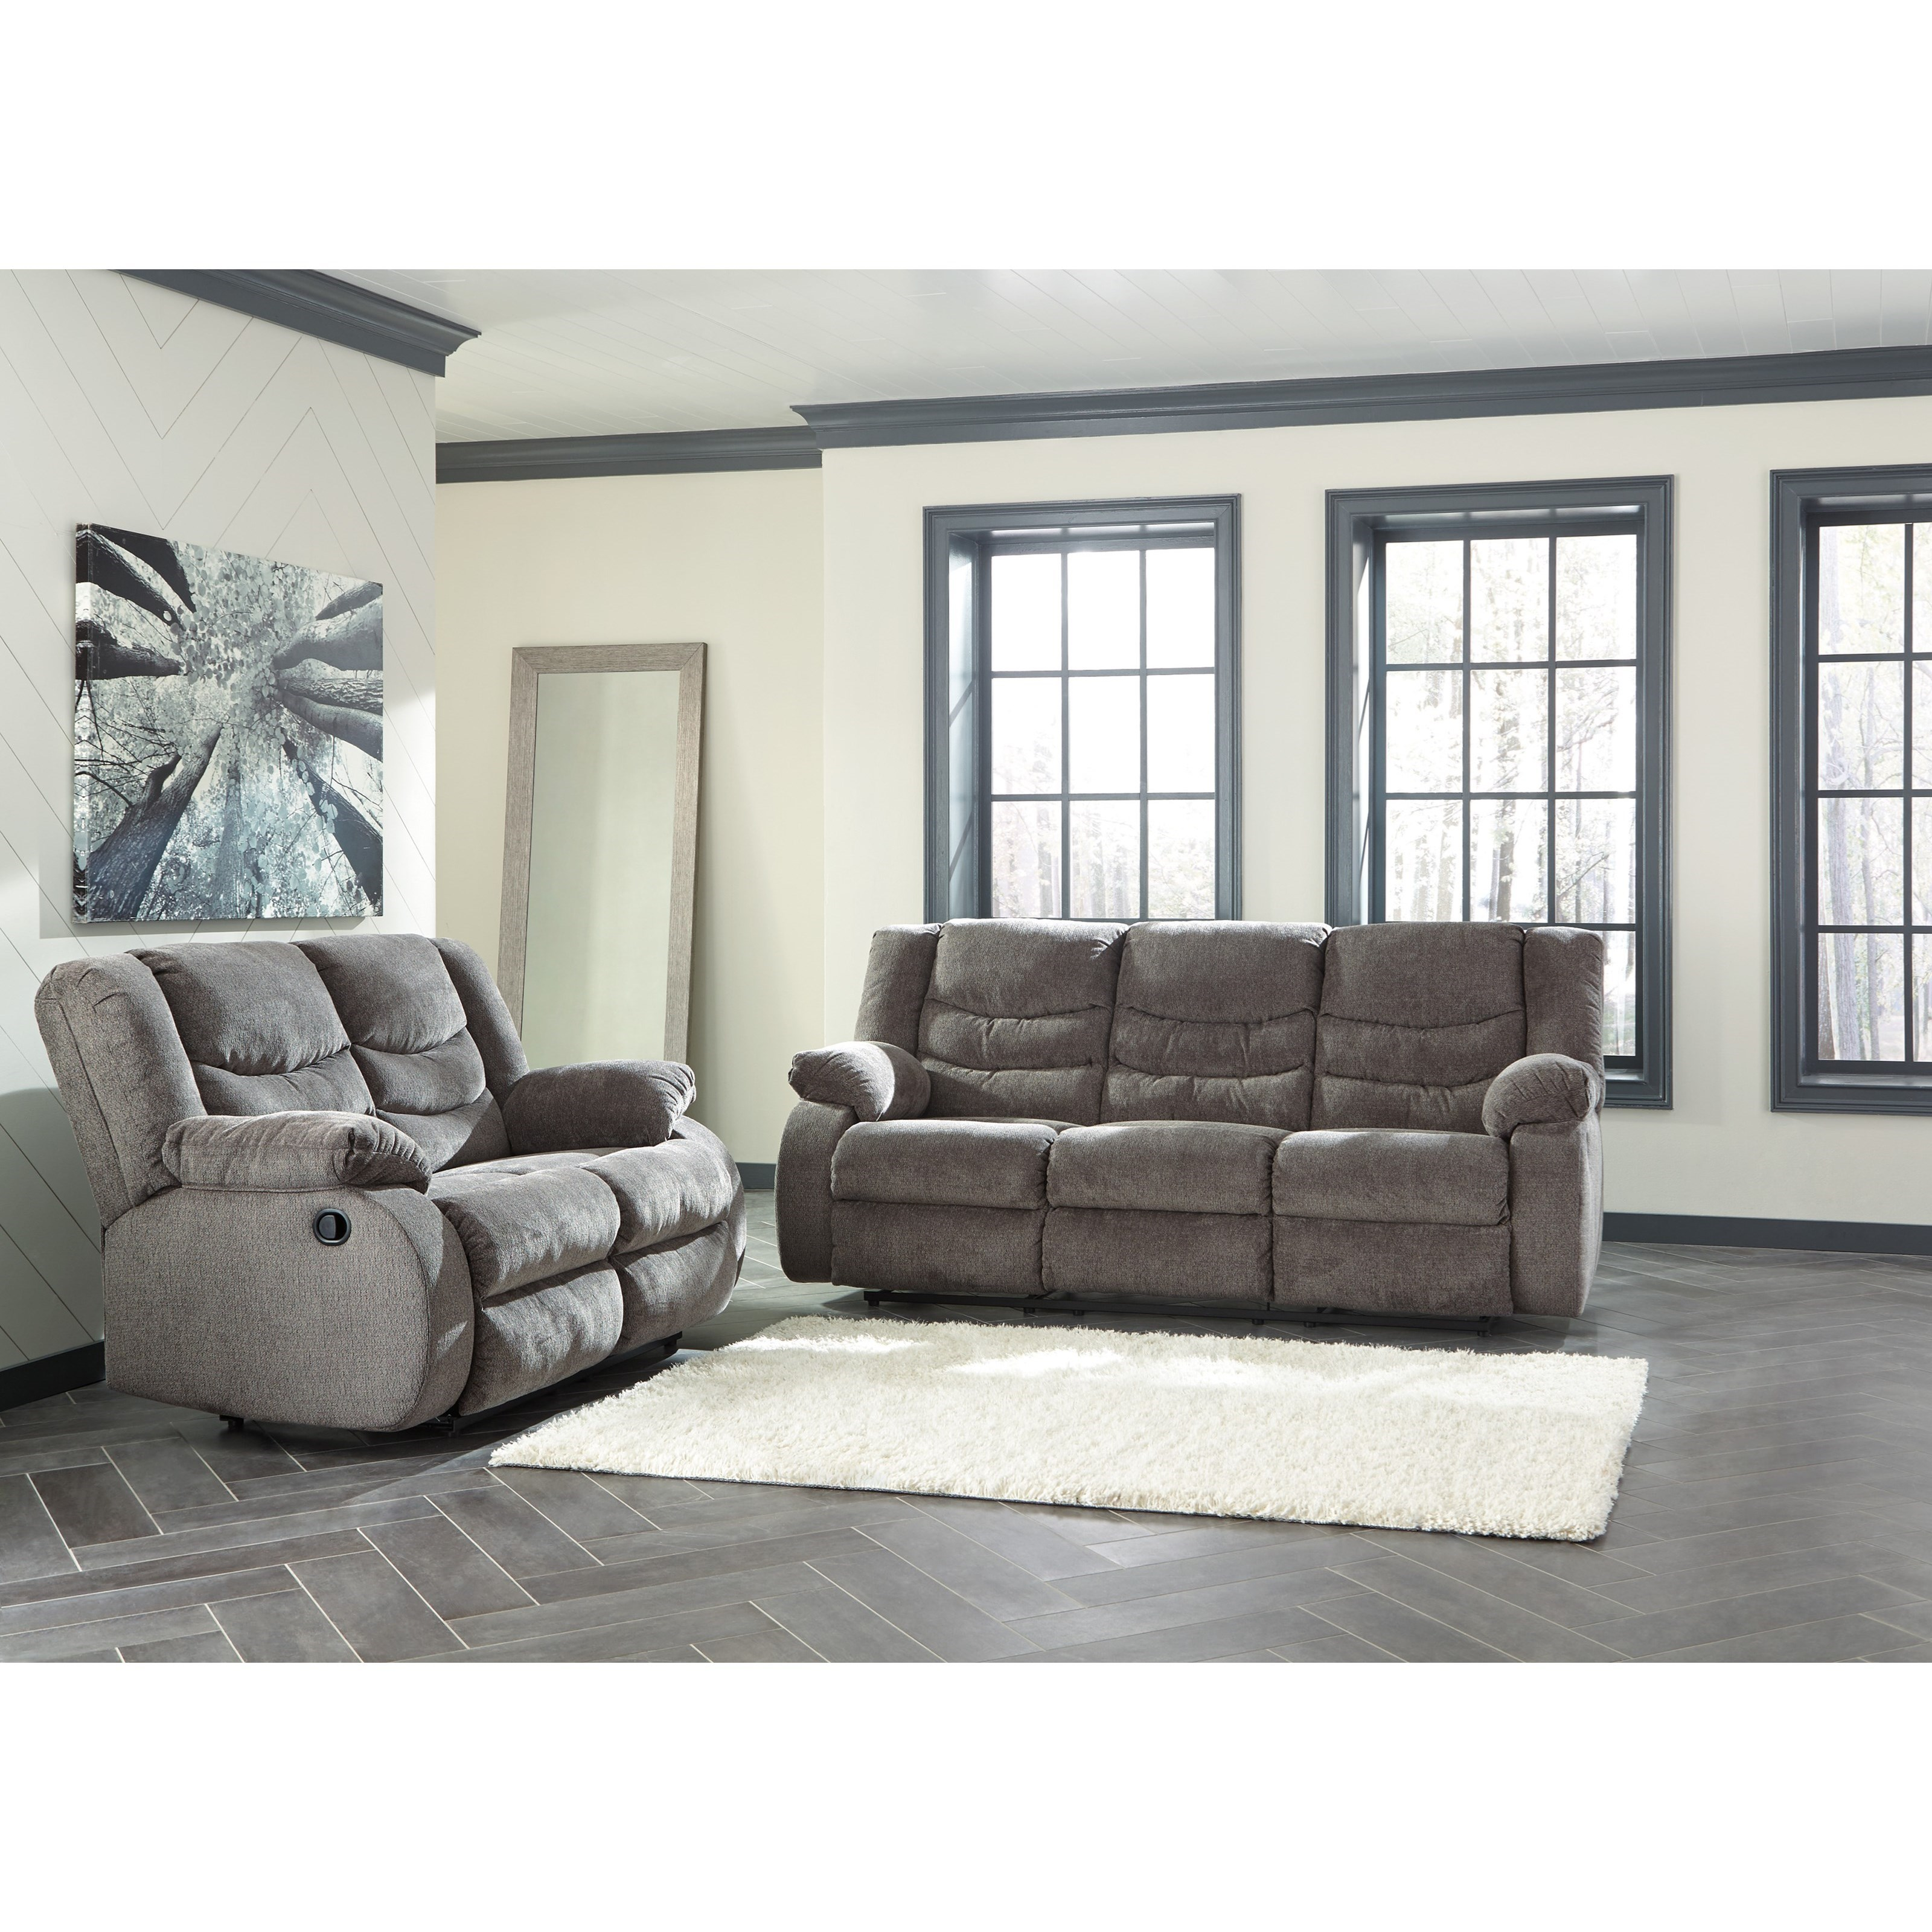 Signature Design By Ashley Tulen Reclining Living Room Group Royal Furniture Reclining